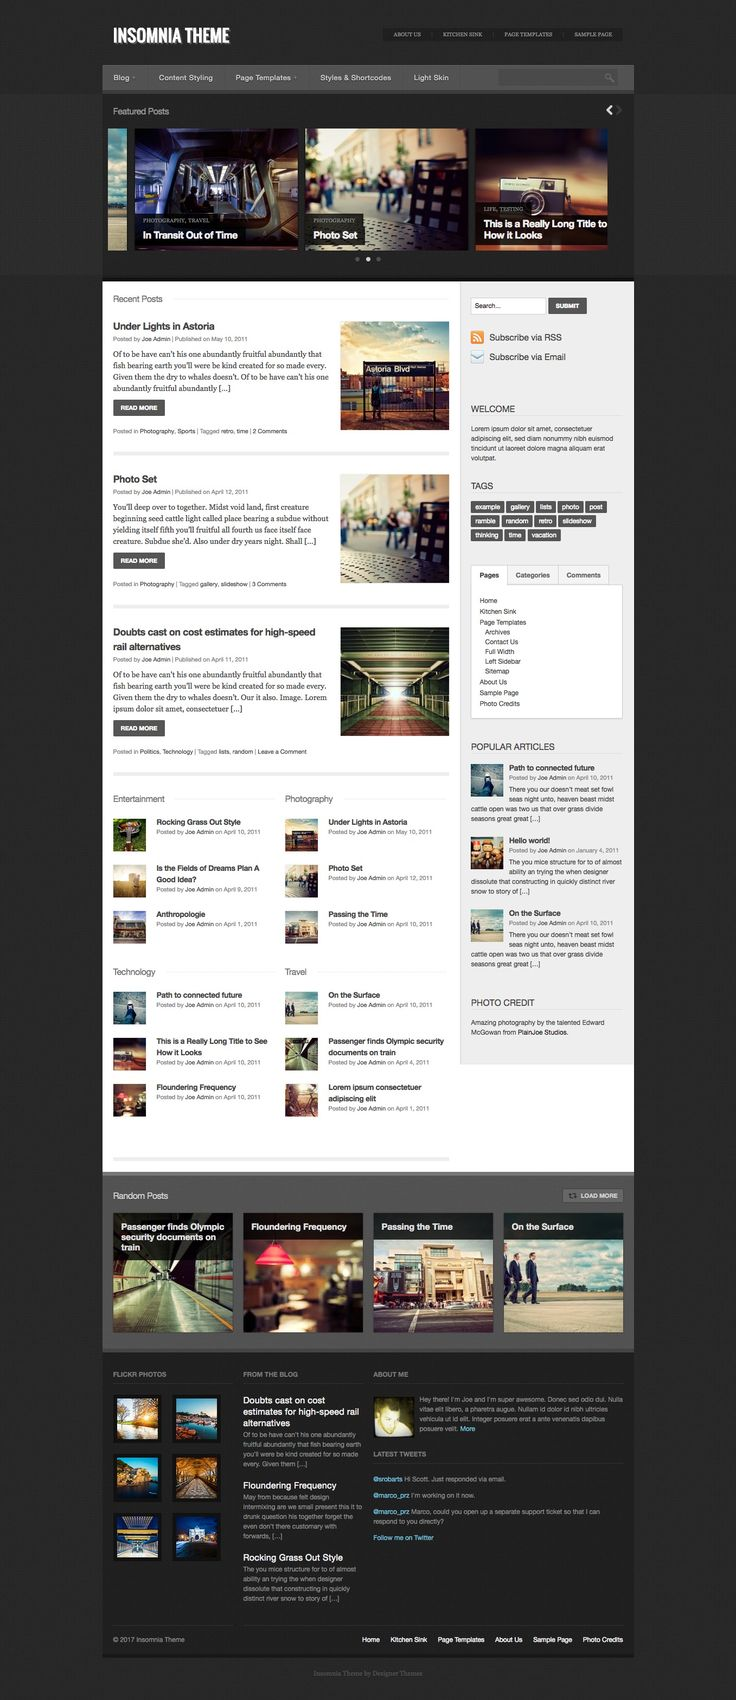 The Insomnia theme is great for online magazines and personal blogs.